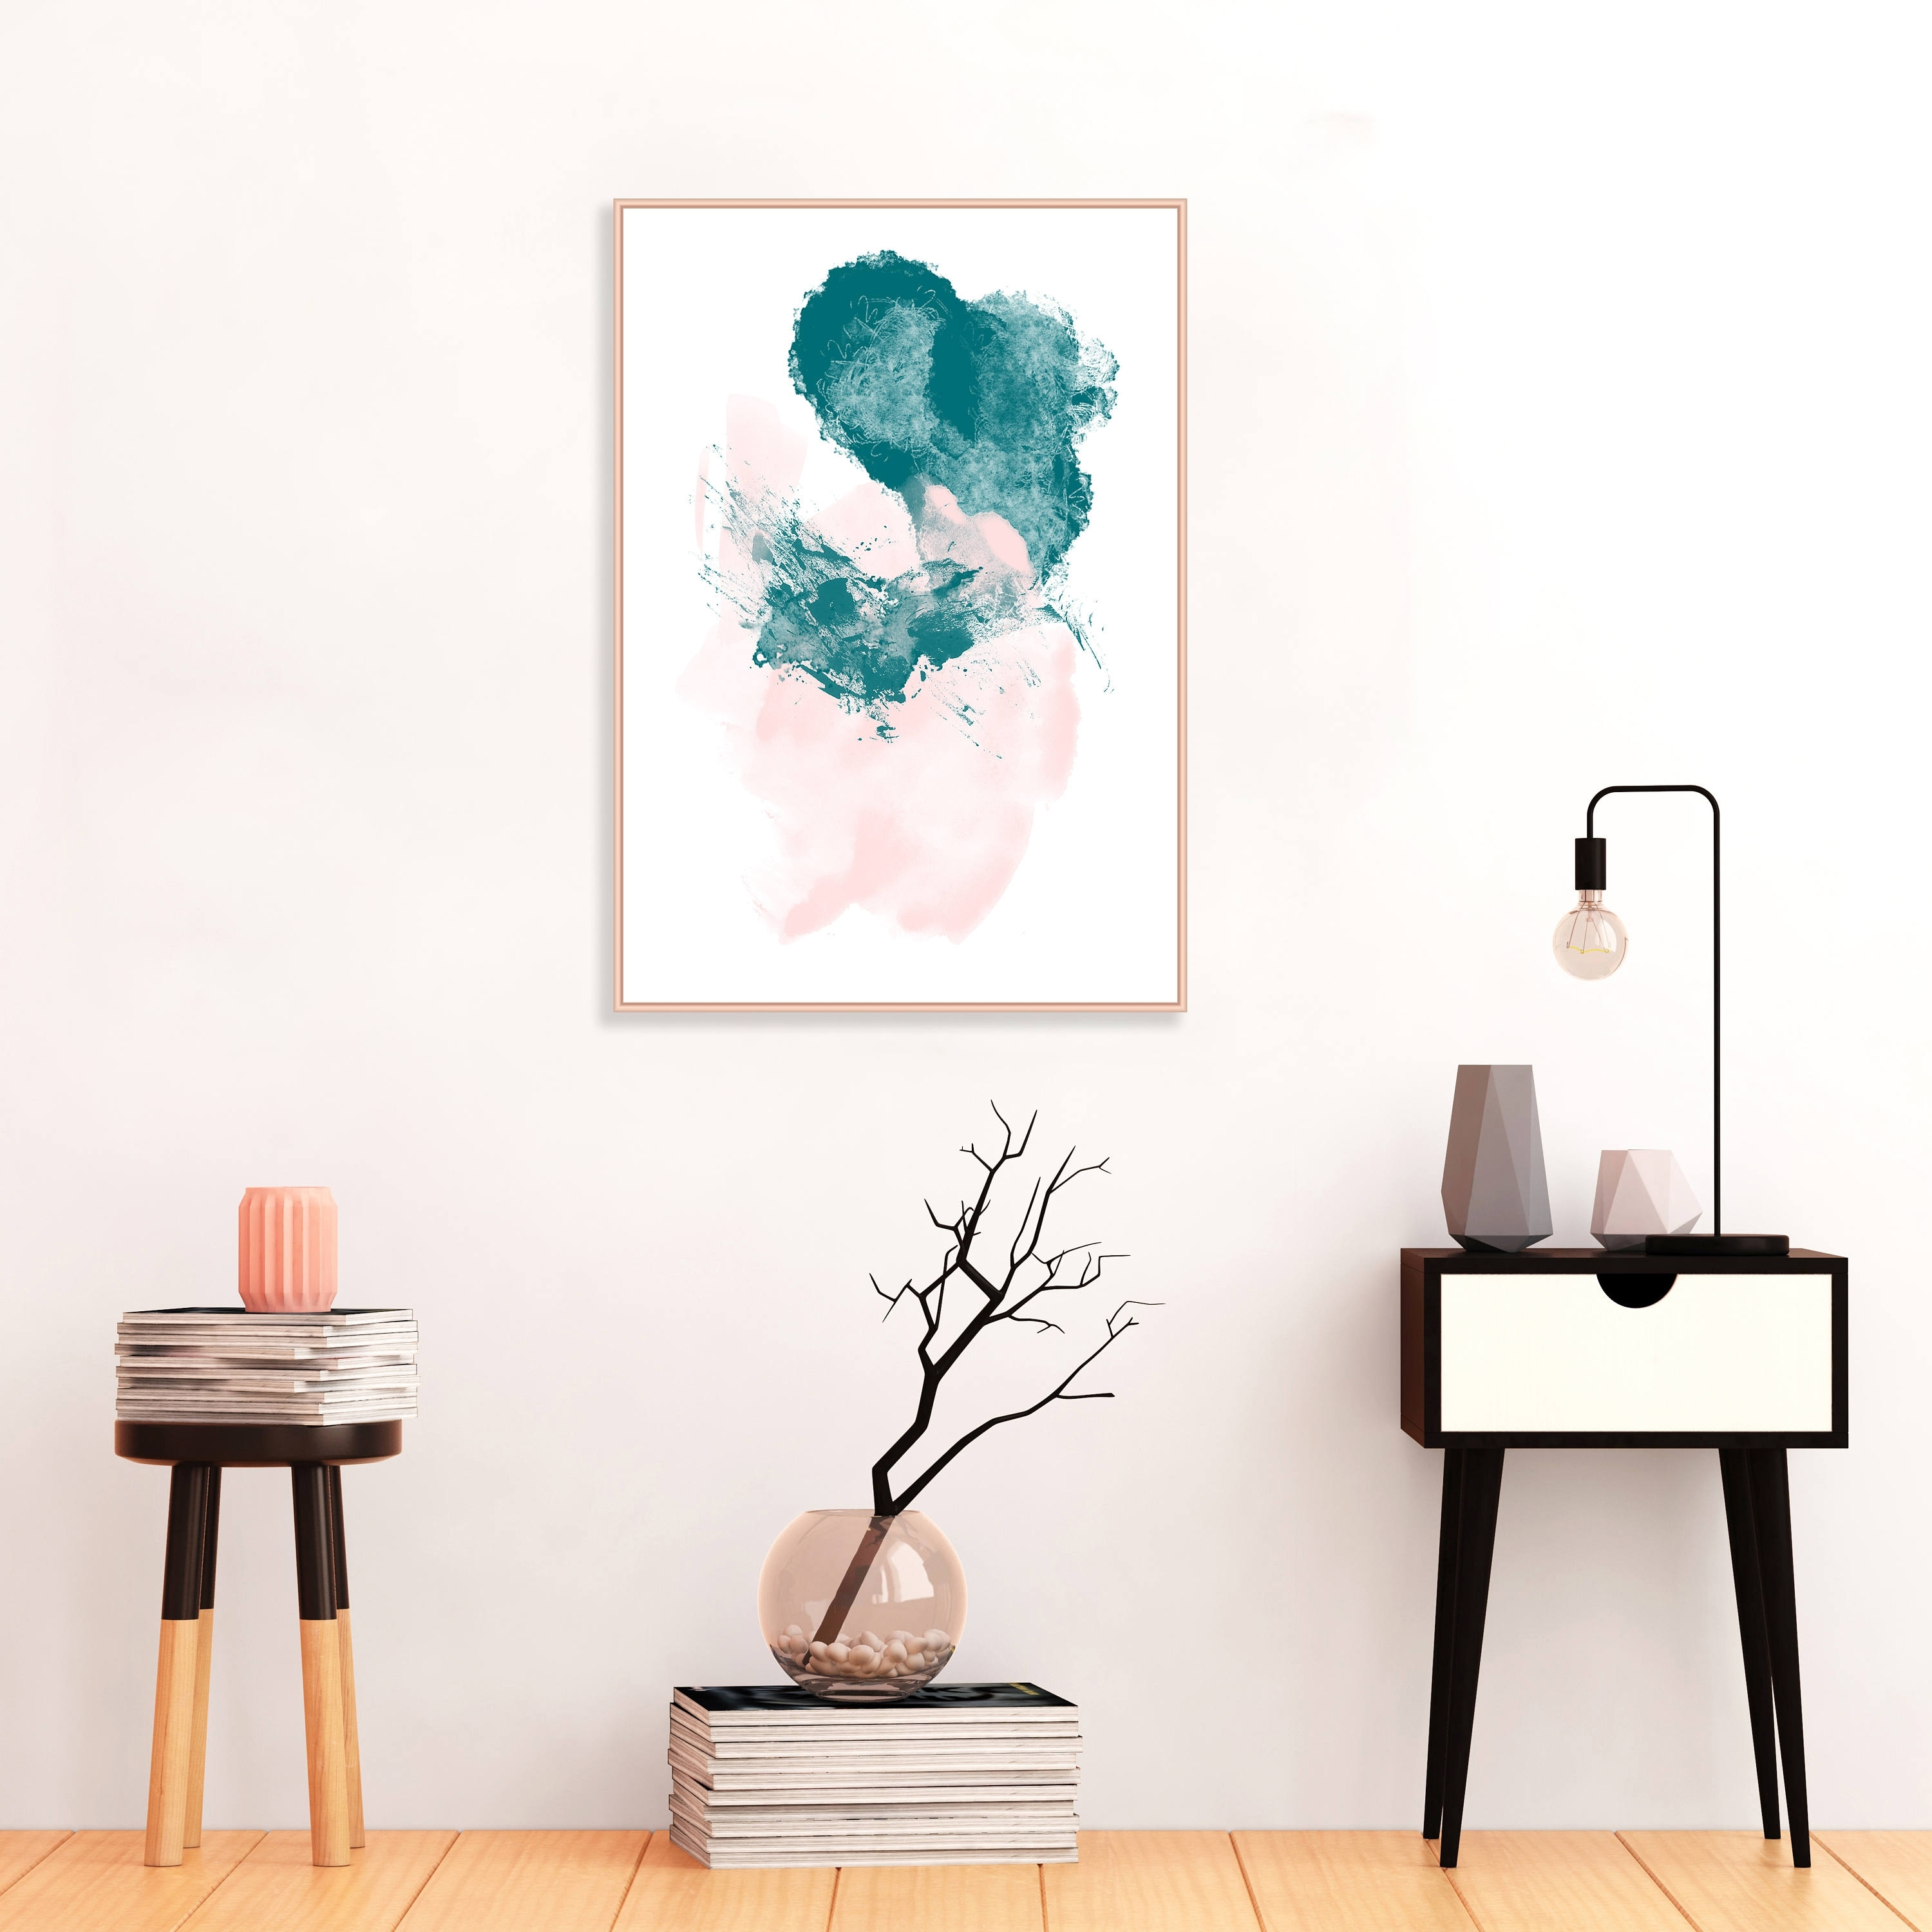 Favorite Abstract Painting, Pink And Teal Abstract Art, Minimalist Painting Regarding Affordable Abstract Wall Art (View 9 of 15)